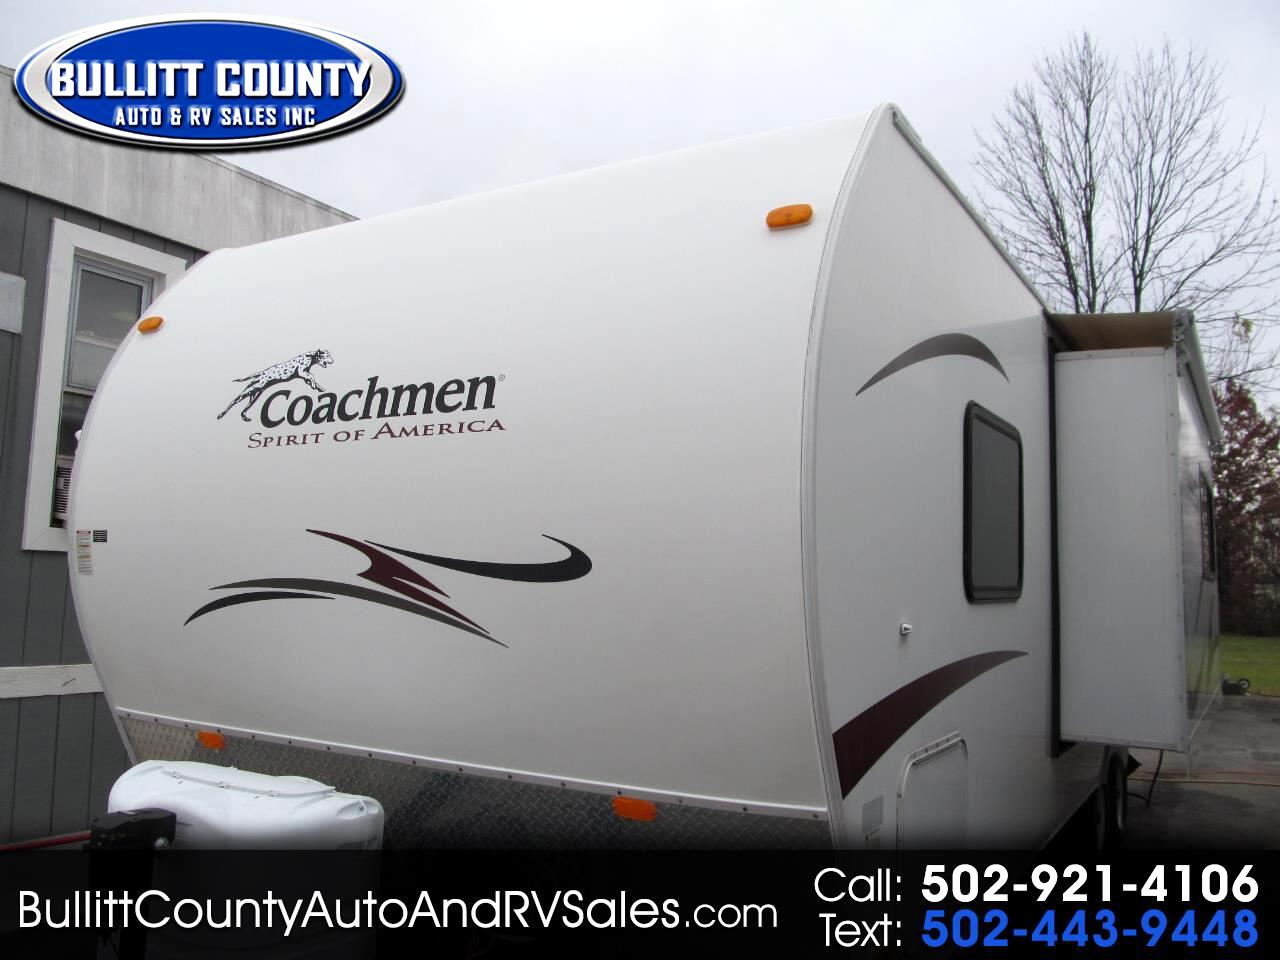 2009 Coachmen Spirit of America 26RKS